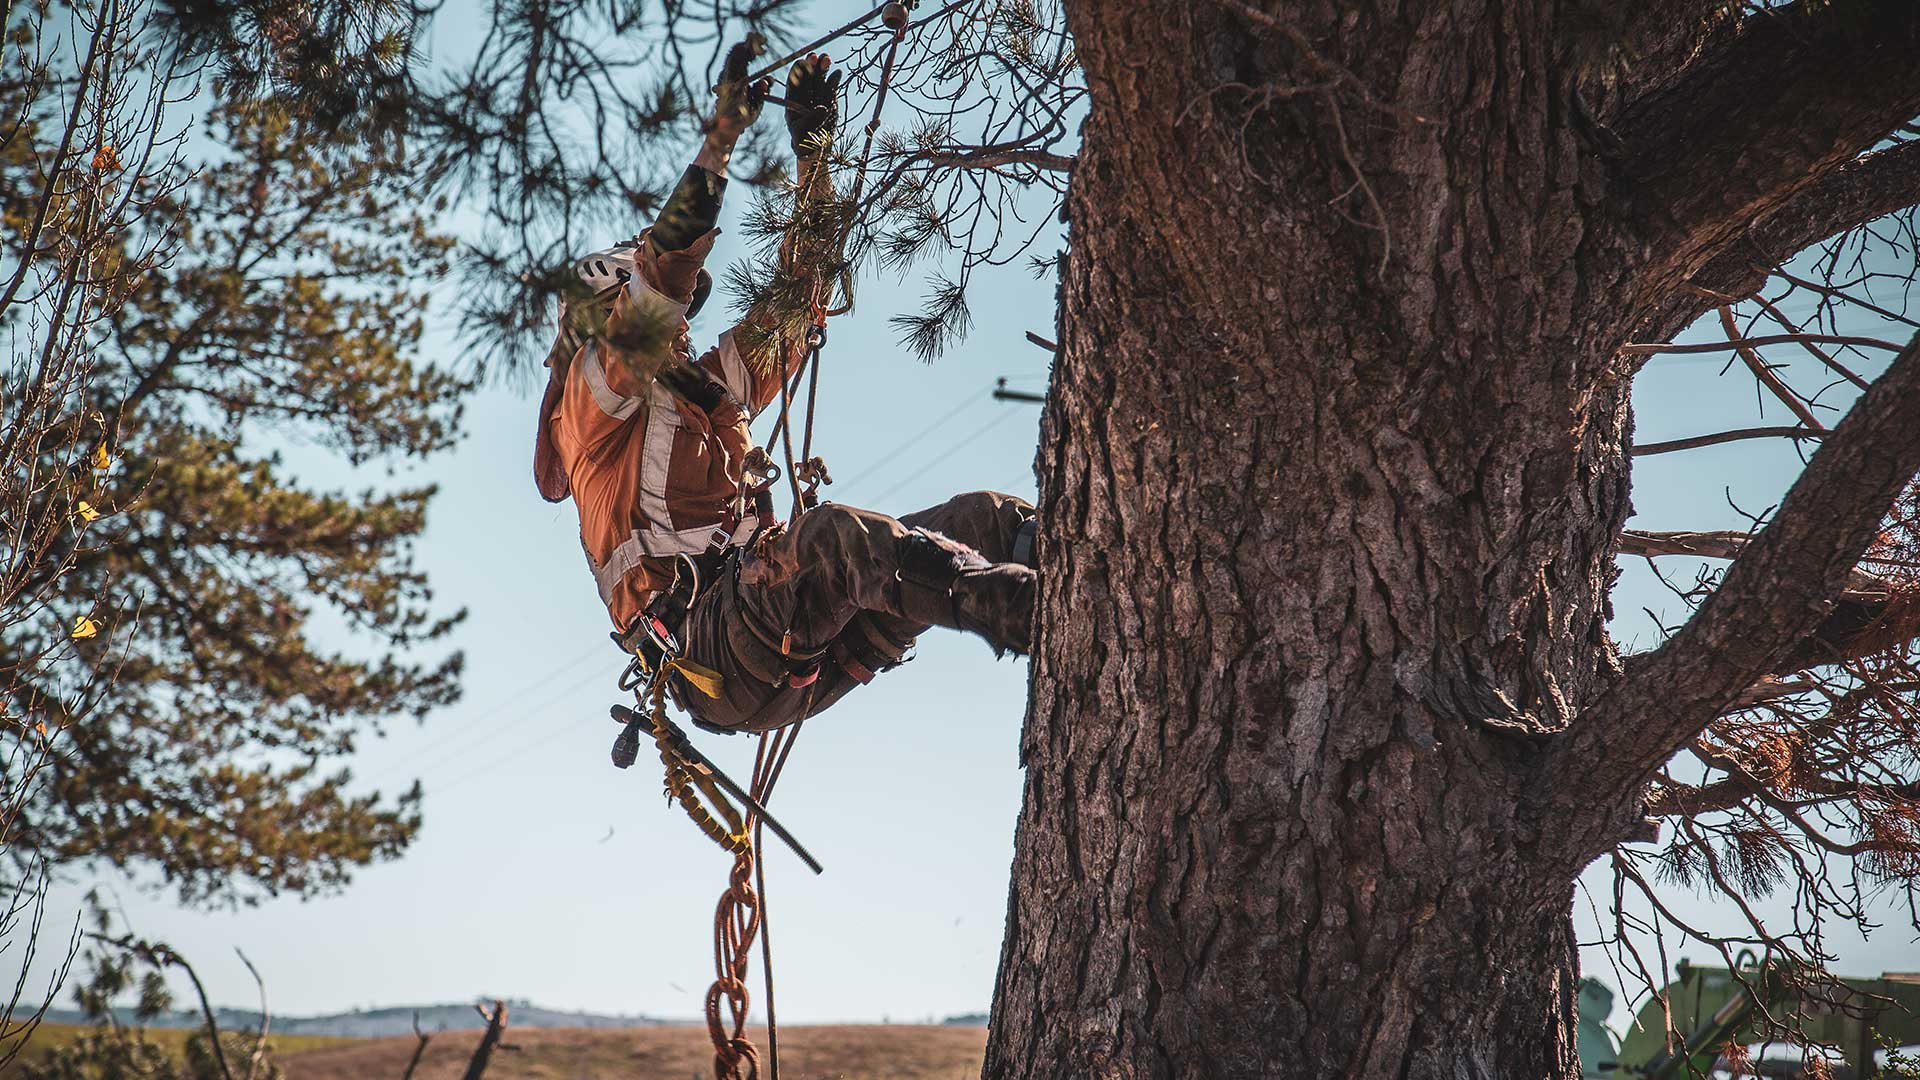 Tempe-Mesa Tree Trimming and Stump Grinding Services-We Offer Tree Trimming Services, Tree Removal, Tree Pruning, Tree Cutting, Residential and Commercial Tree Trimming Services, Storm Damage, Emergency Tree Removal, Land Clearing, Tree Companies, Tree Care Service, Stump Grinding, and we're the Best Tree Trimming Company Near You Guaranteed!